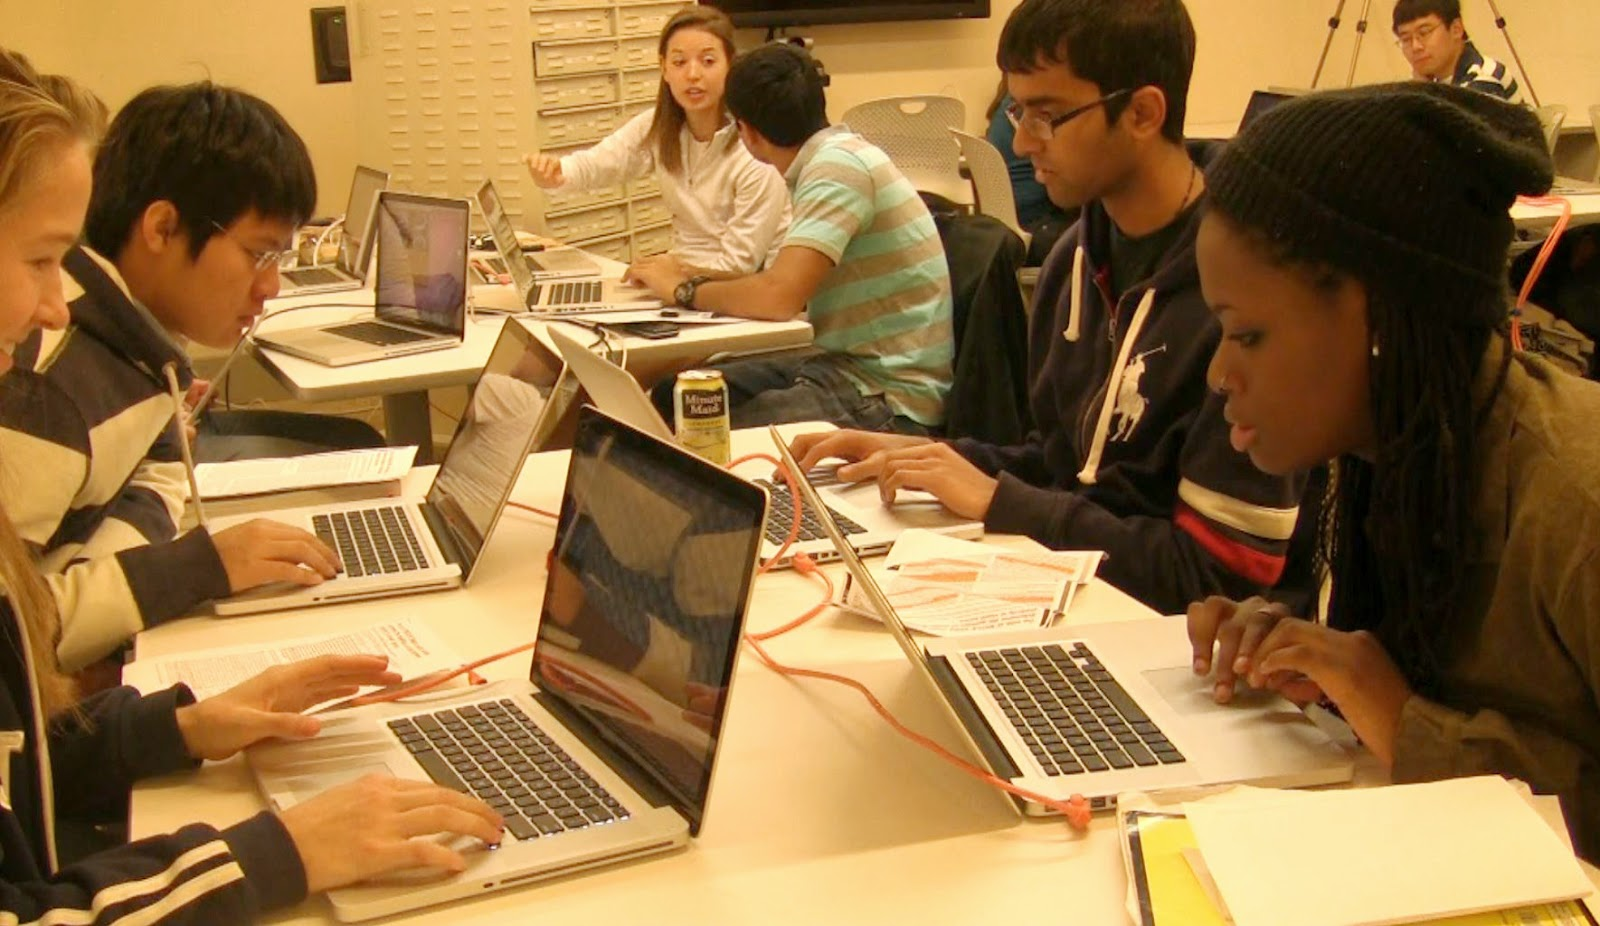 Students using a classroom set of laptops